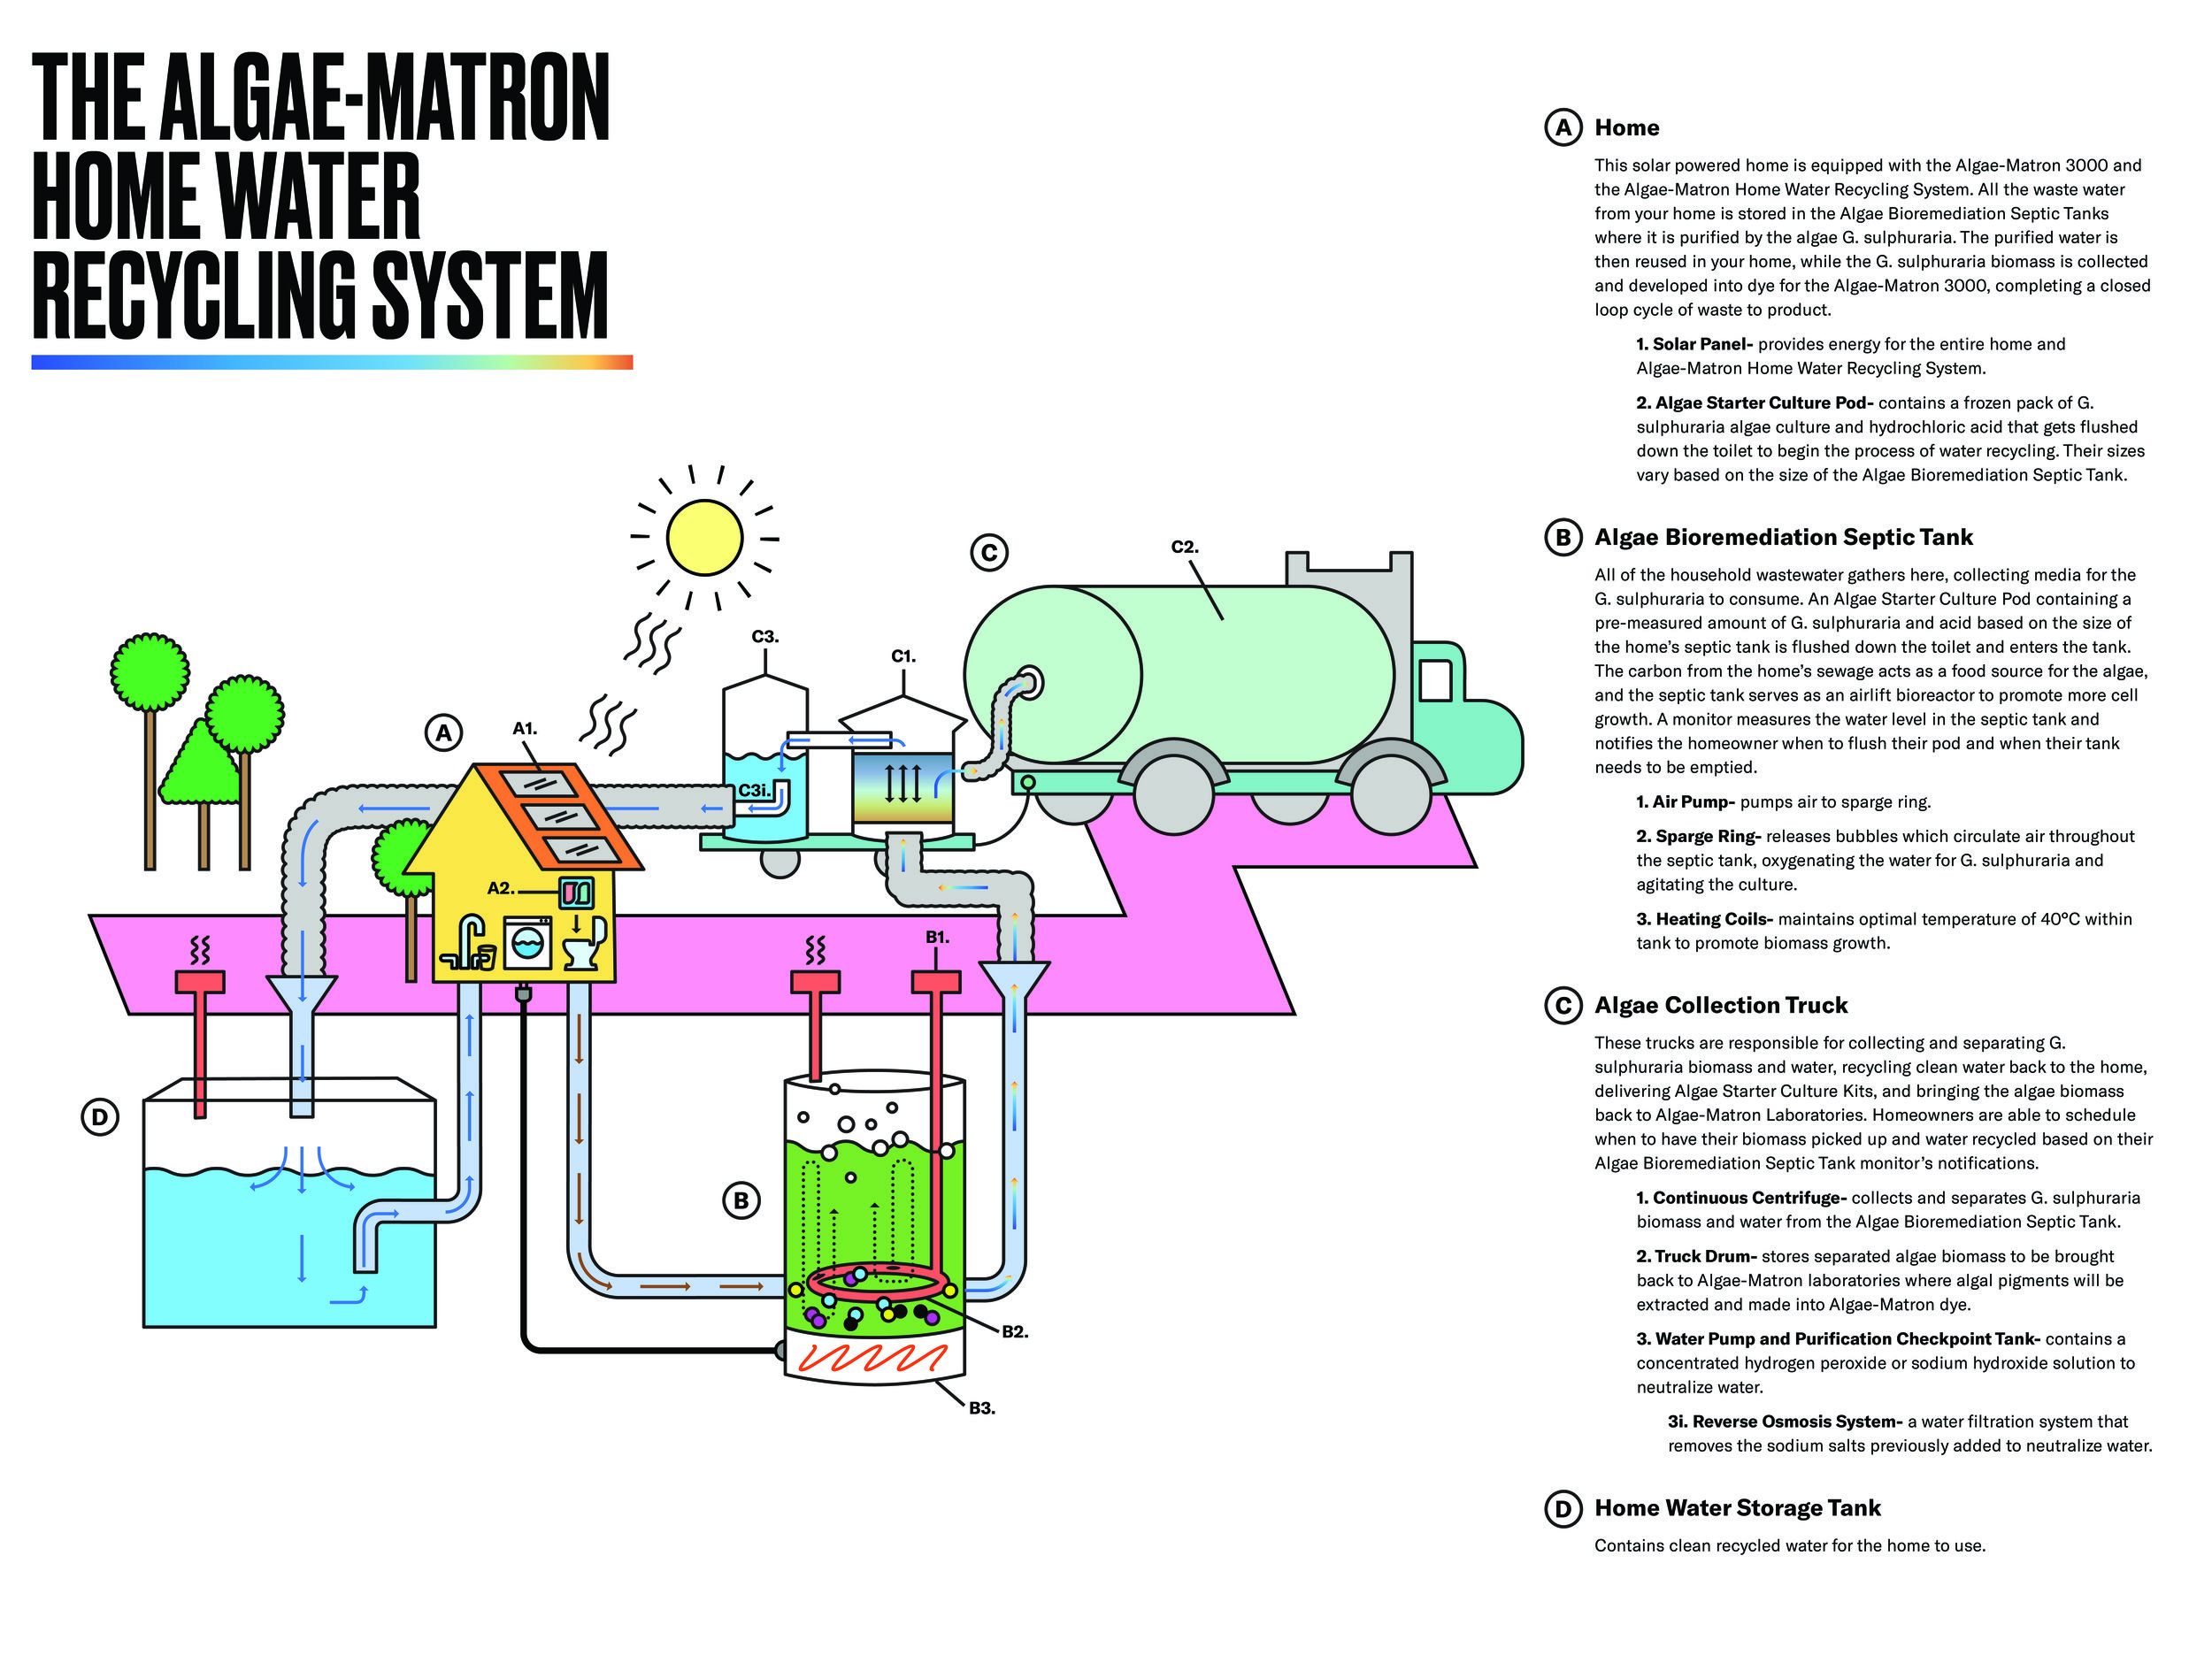 ALGAE_MATRON_HOME_WATER_RECYCLING_SYSTEM.jpg